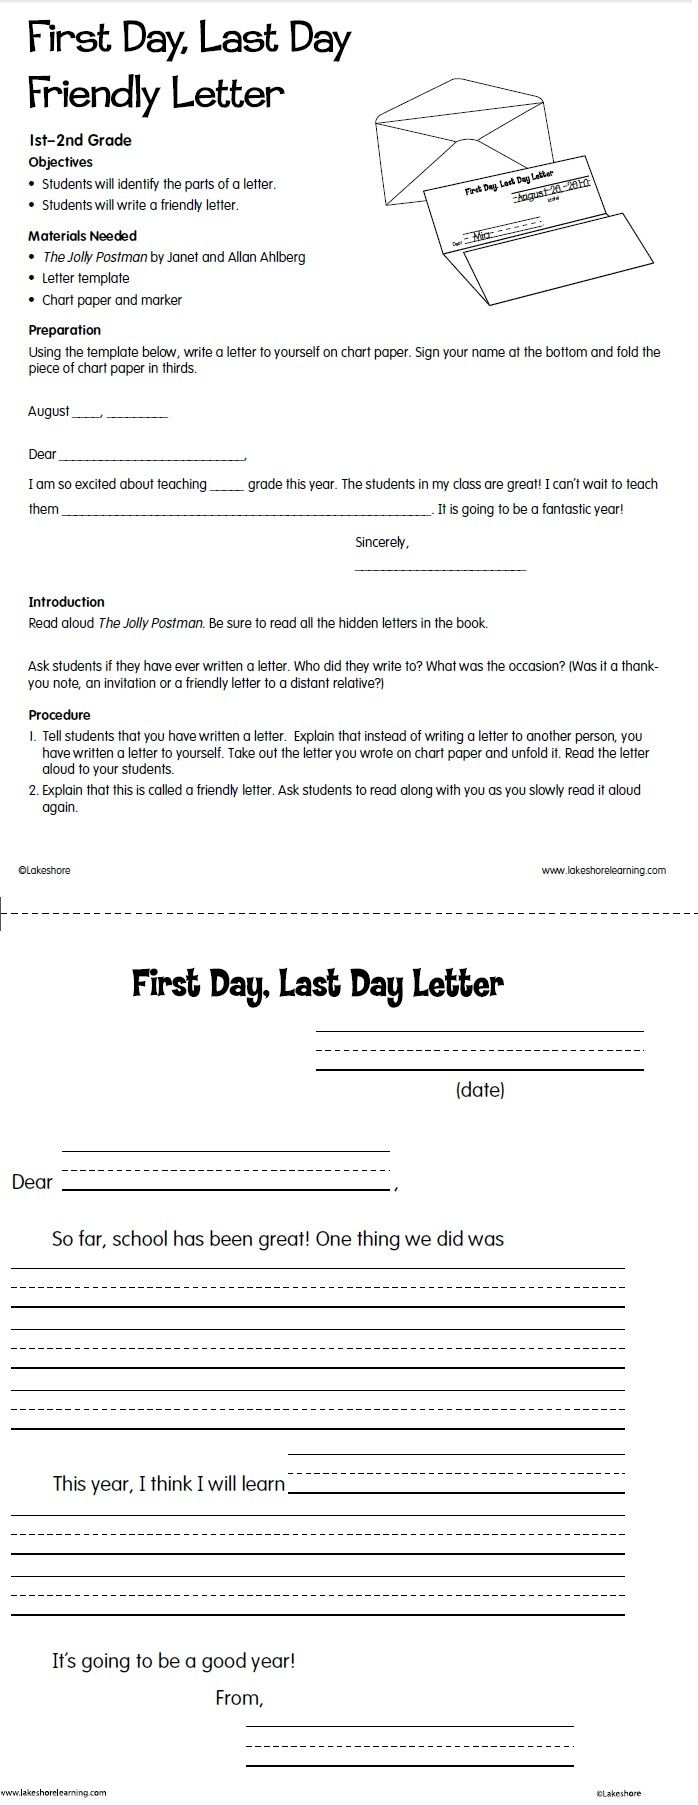 First day last day friendly letter lesson plan from lakeshore first day last day friendly letter lesson plan from lakeshore learning stopboris Choice Image